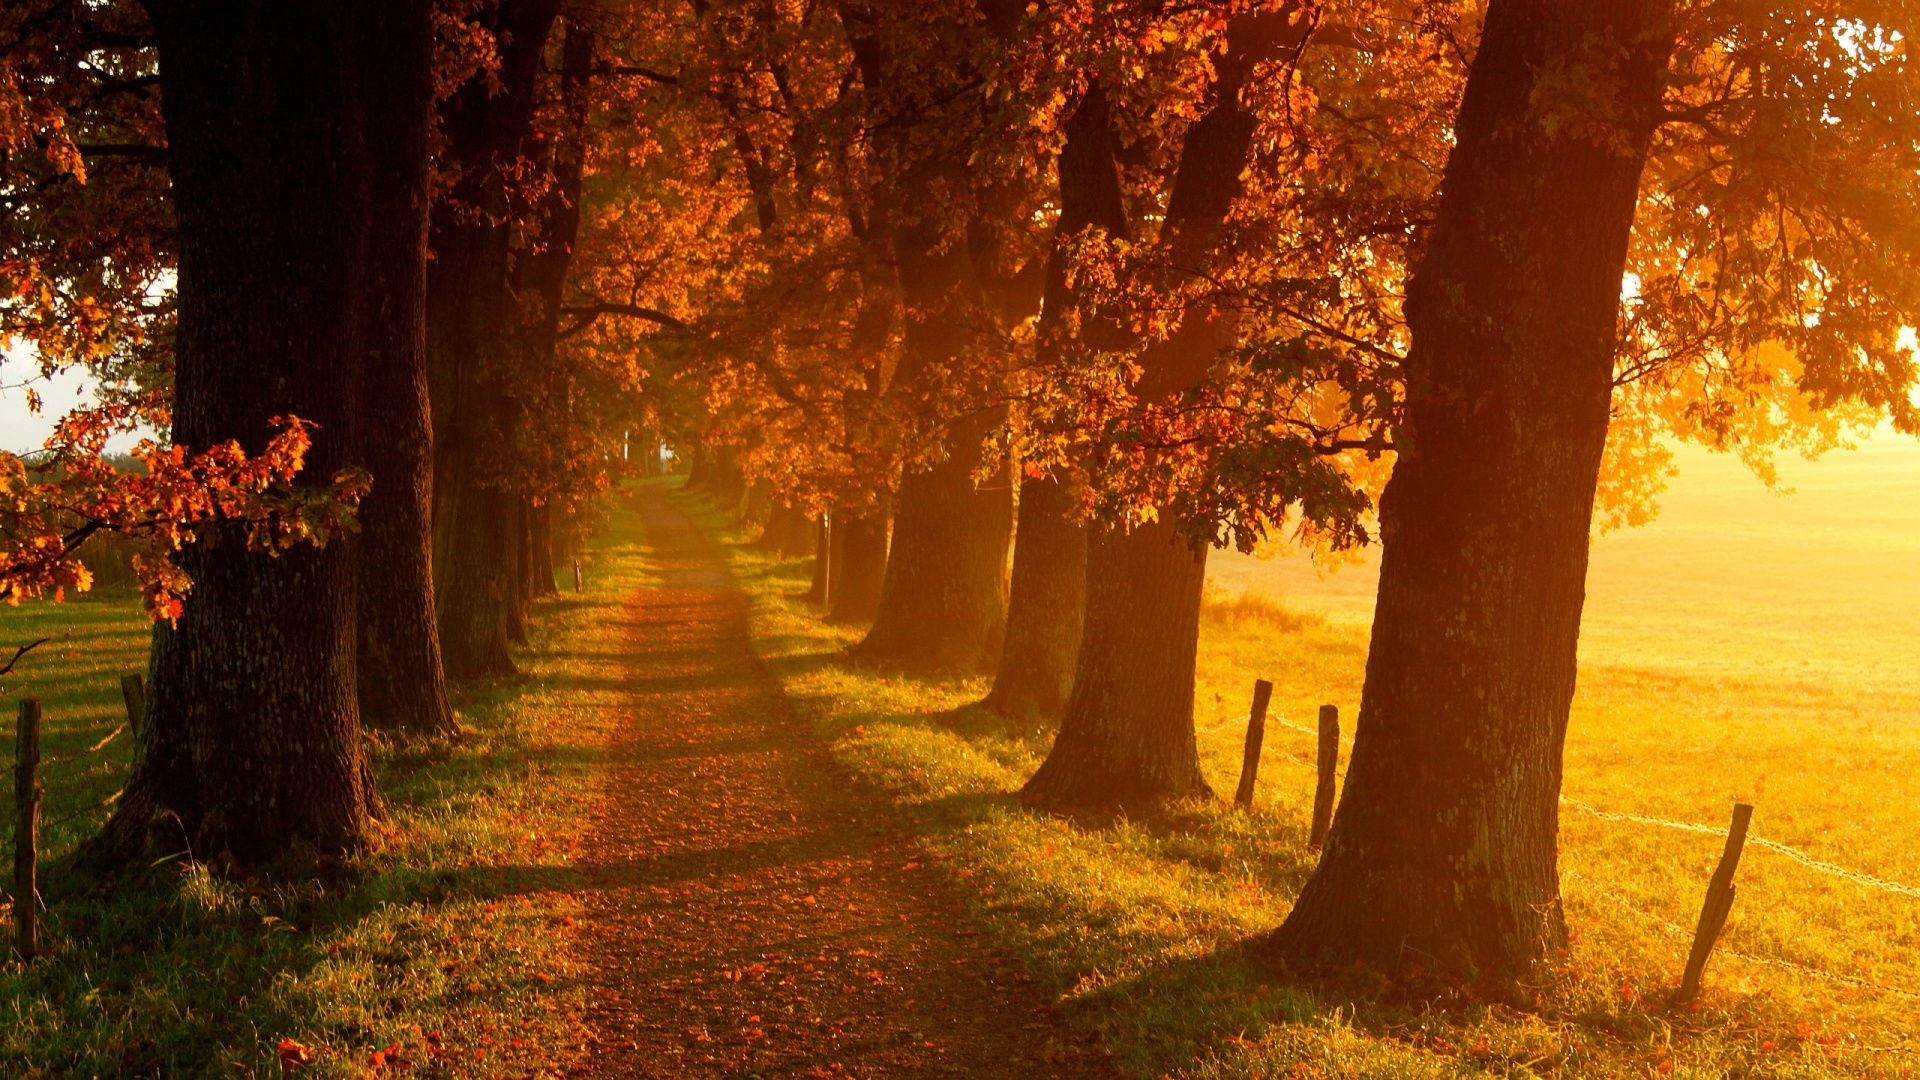 Autumn Wallpapers 3 Jpg 1920 1080 Autumn Scenery Autumn Landscape Landscape Wallpaper